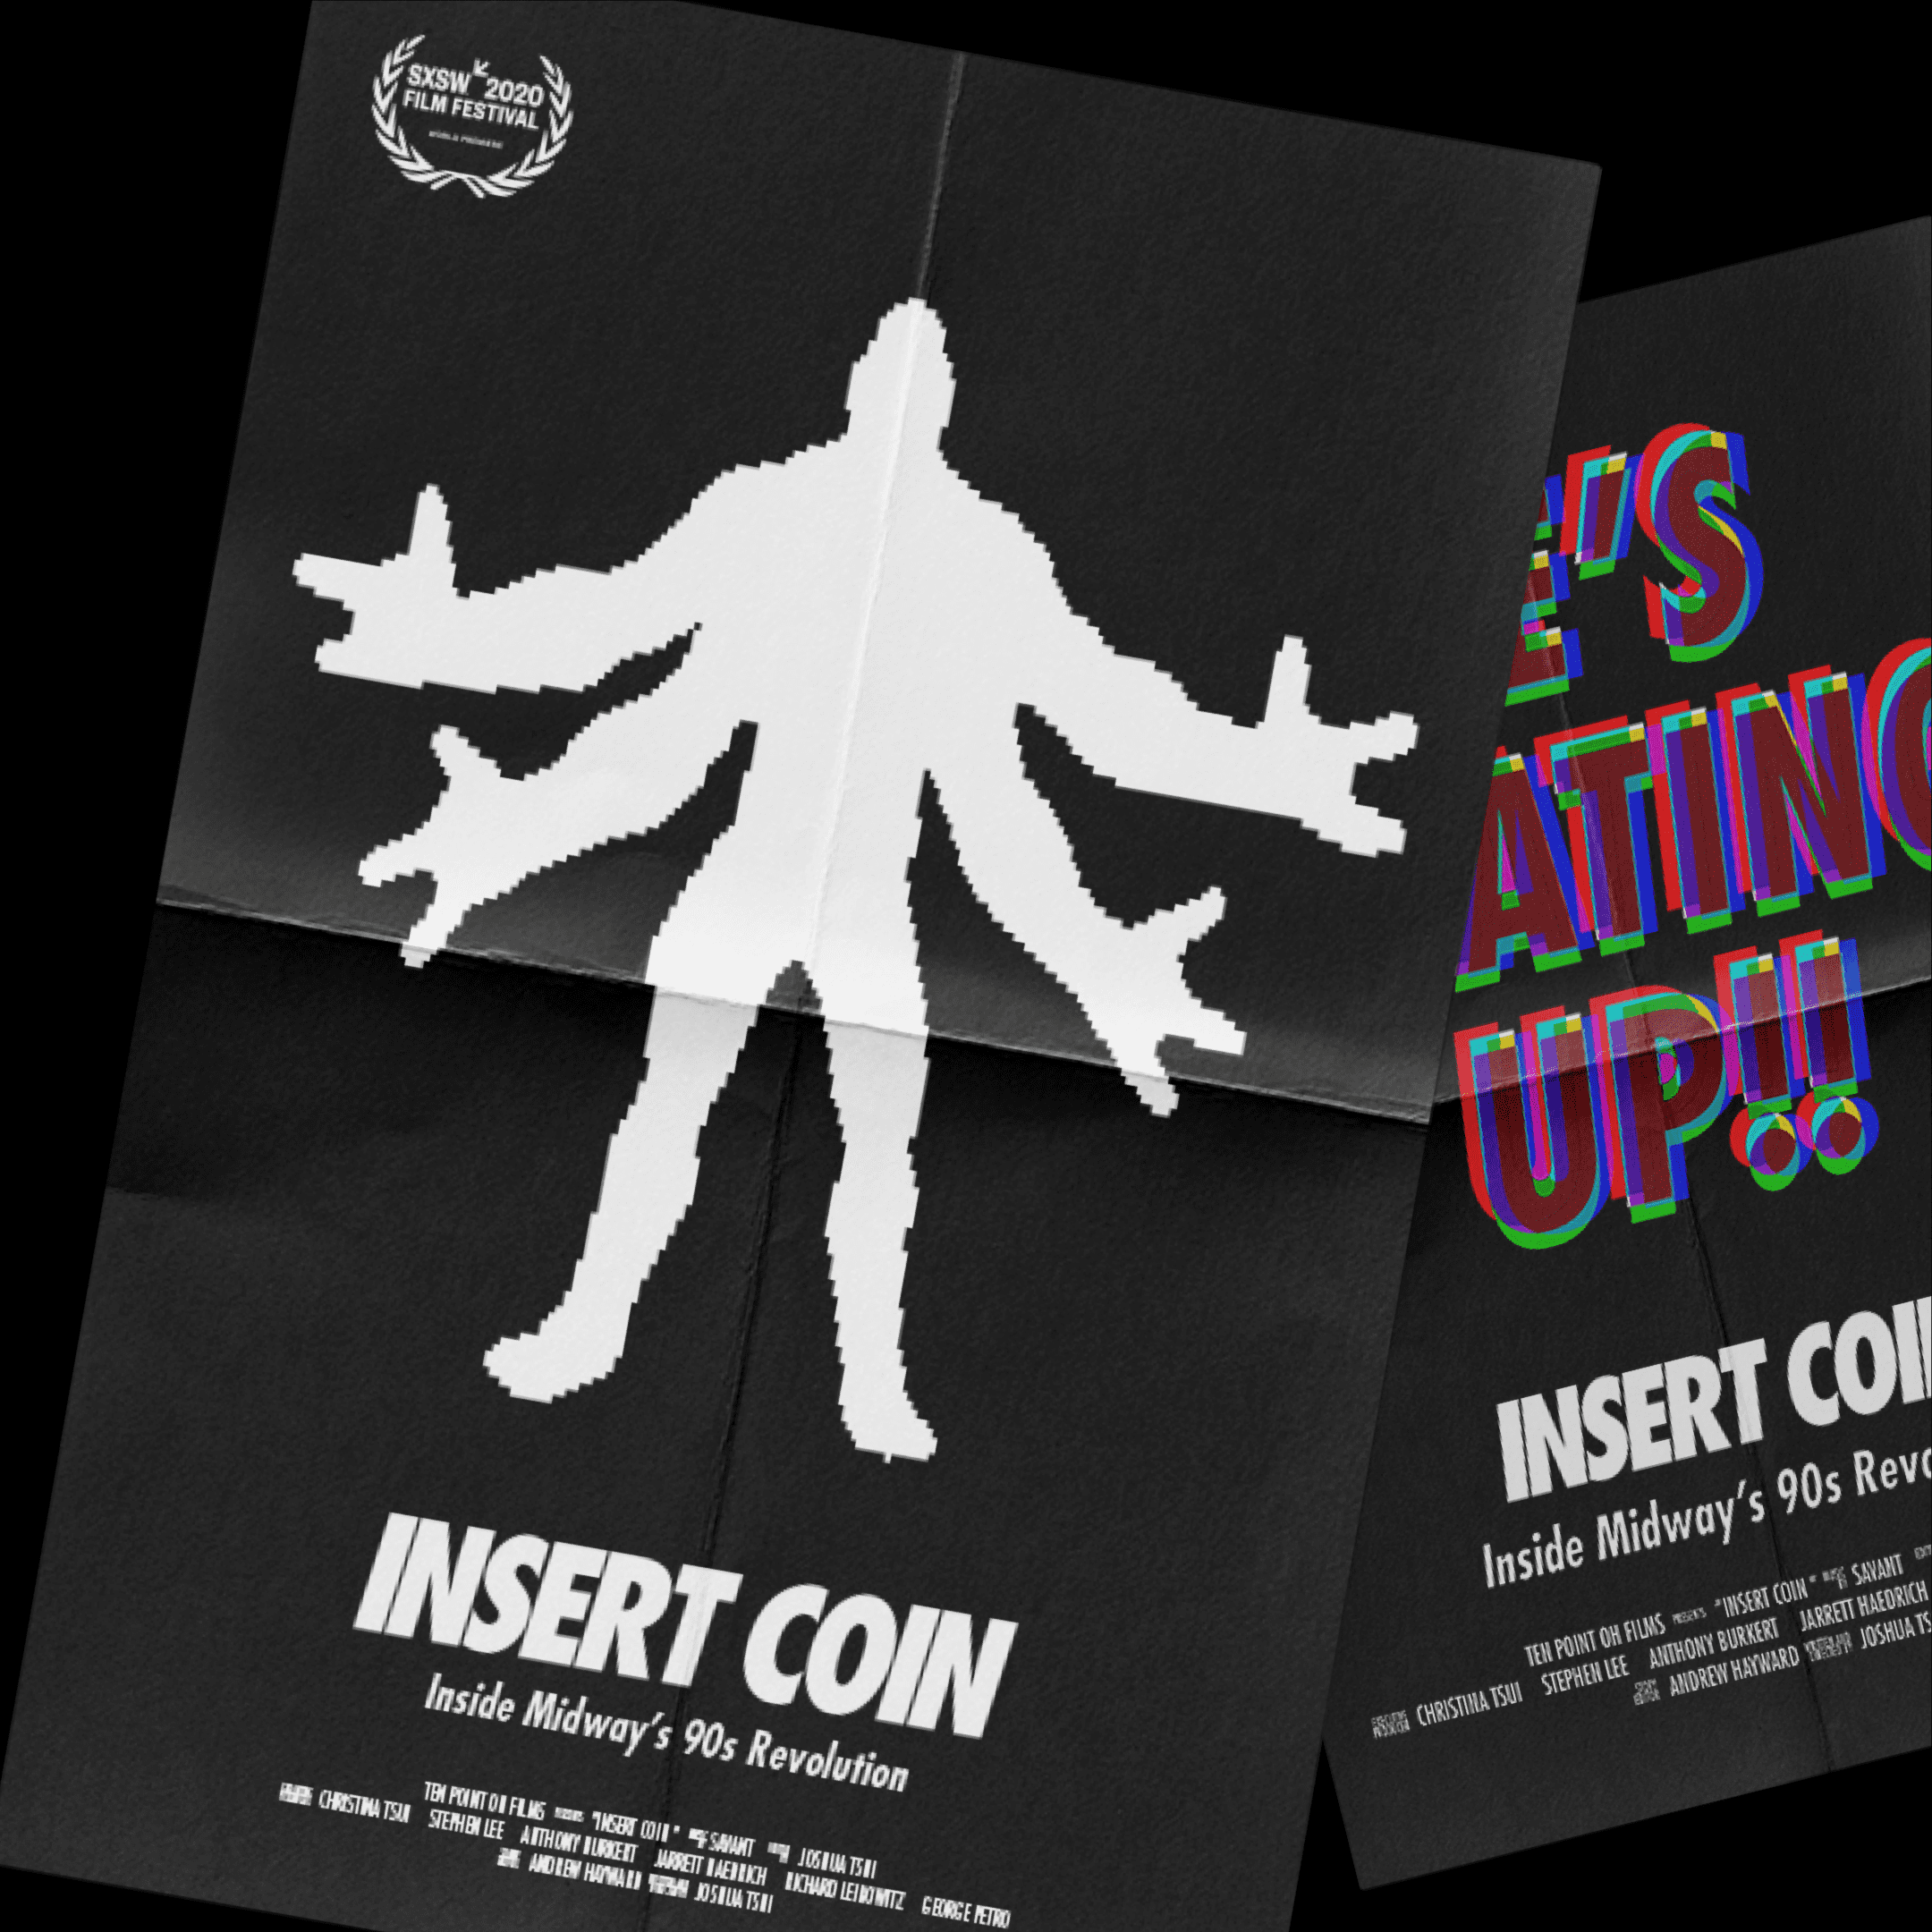 Insert Coin SXSW 2020 Documentary Debut Poster